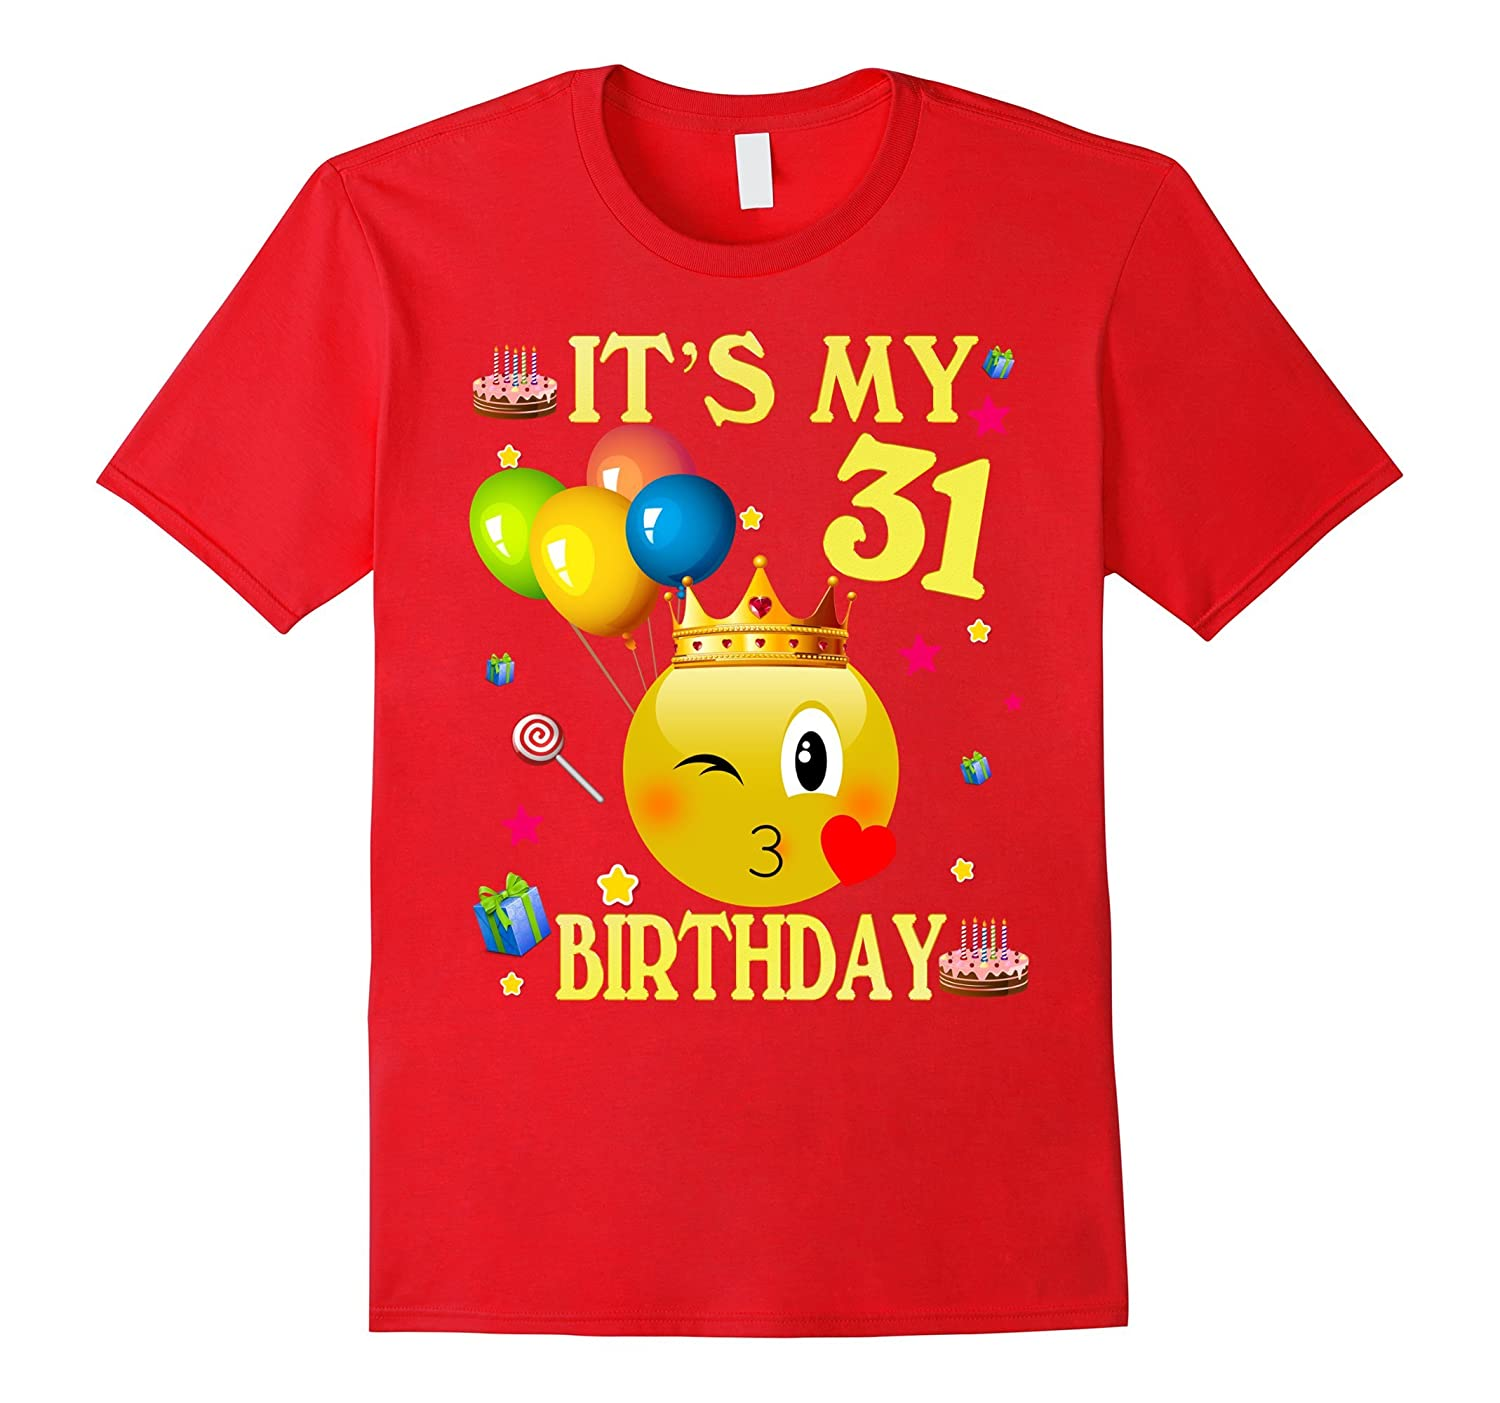 Its My 31st Birthday Shirt 31 Years Old Gift Ah One Ahmyshirt